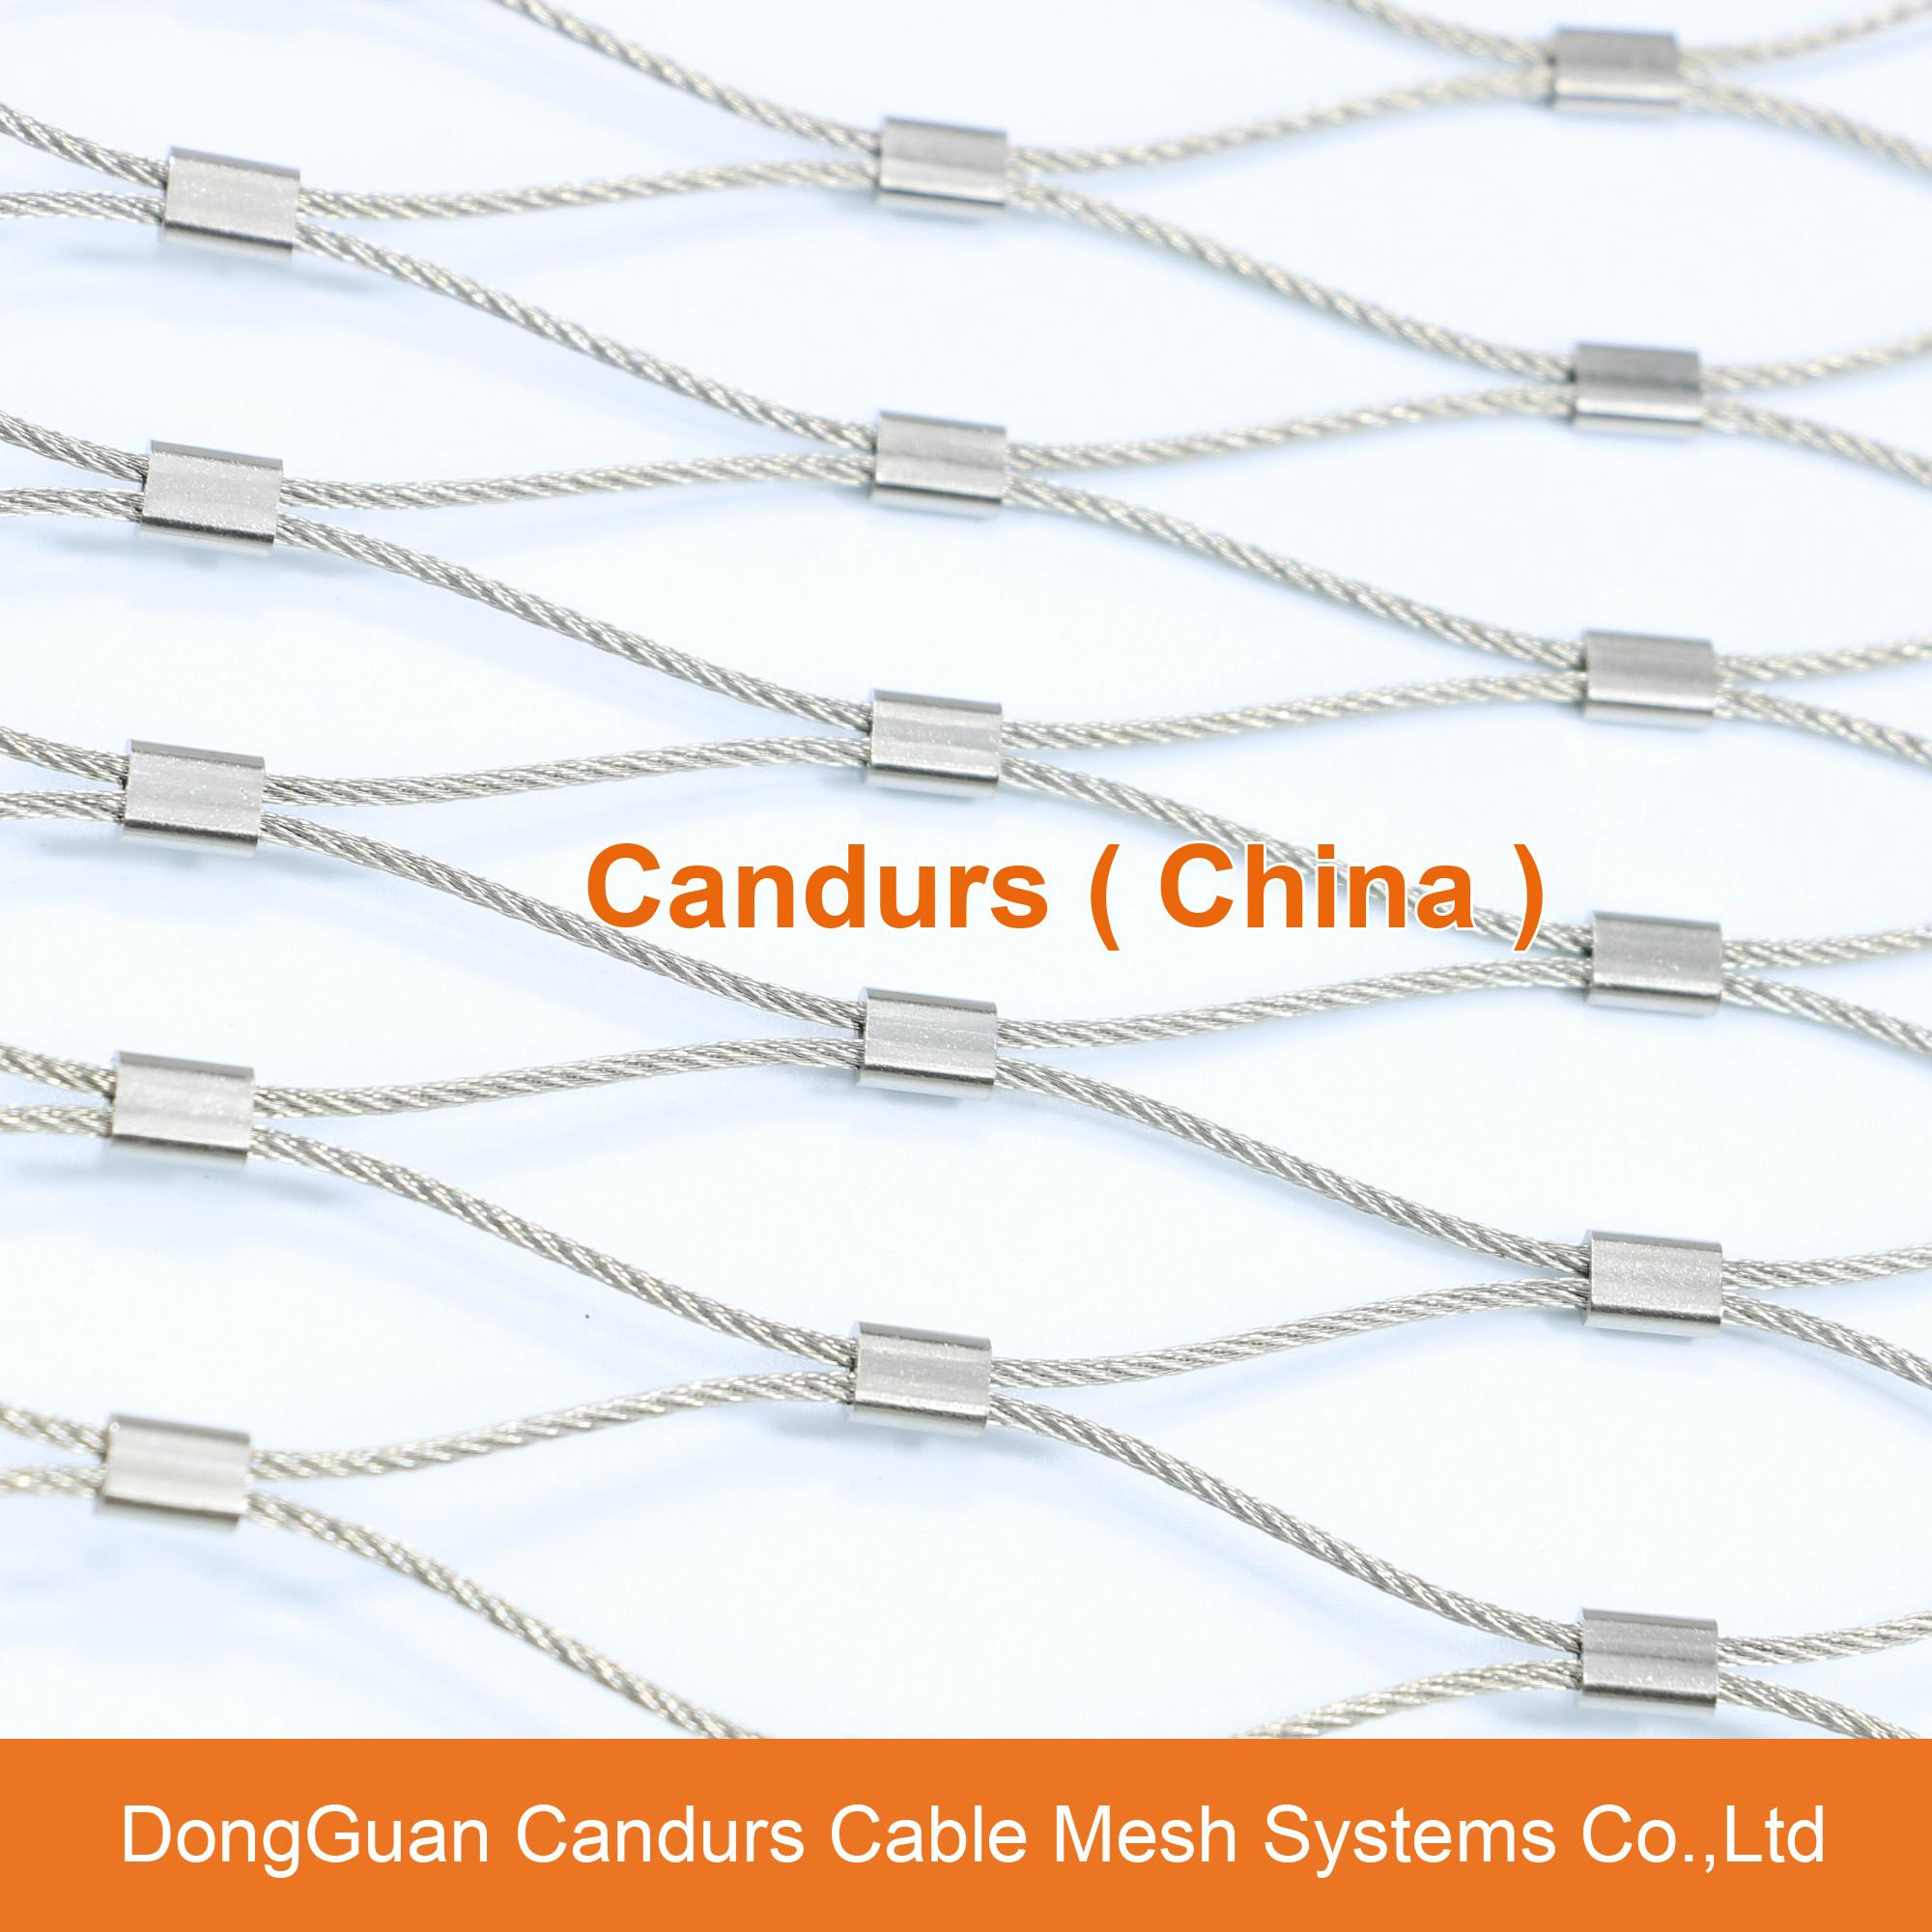 Stainless Steel Wire Product : Metal climbing plant support mesh stainless steel